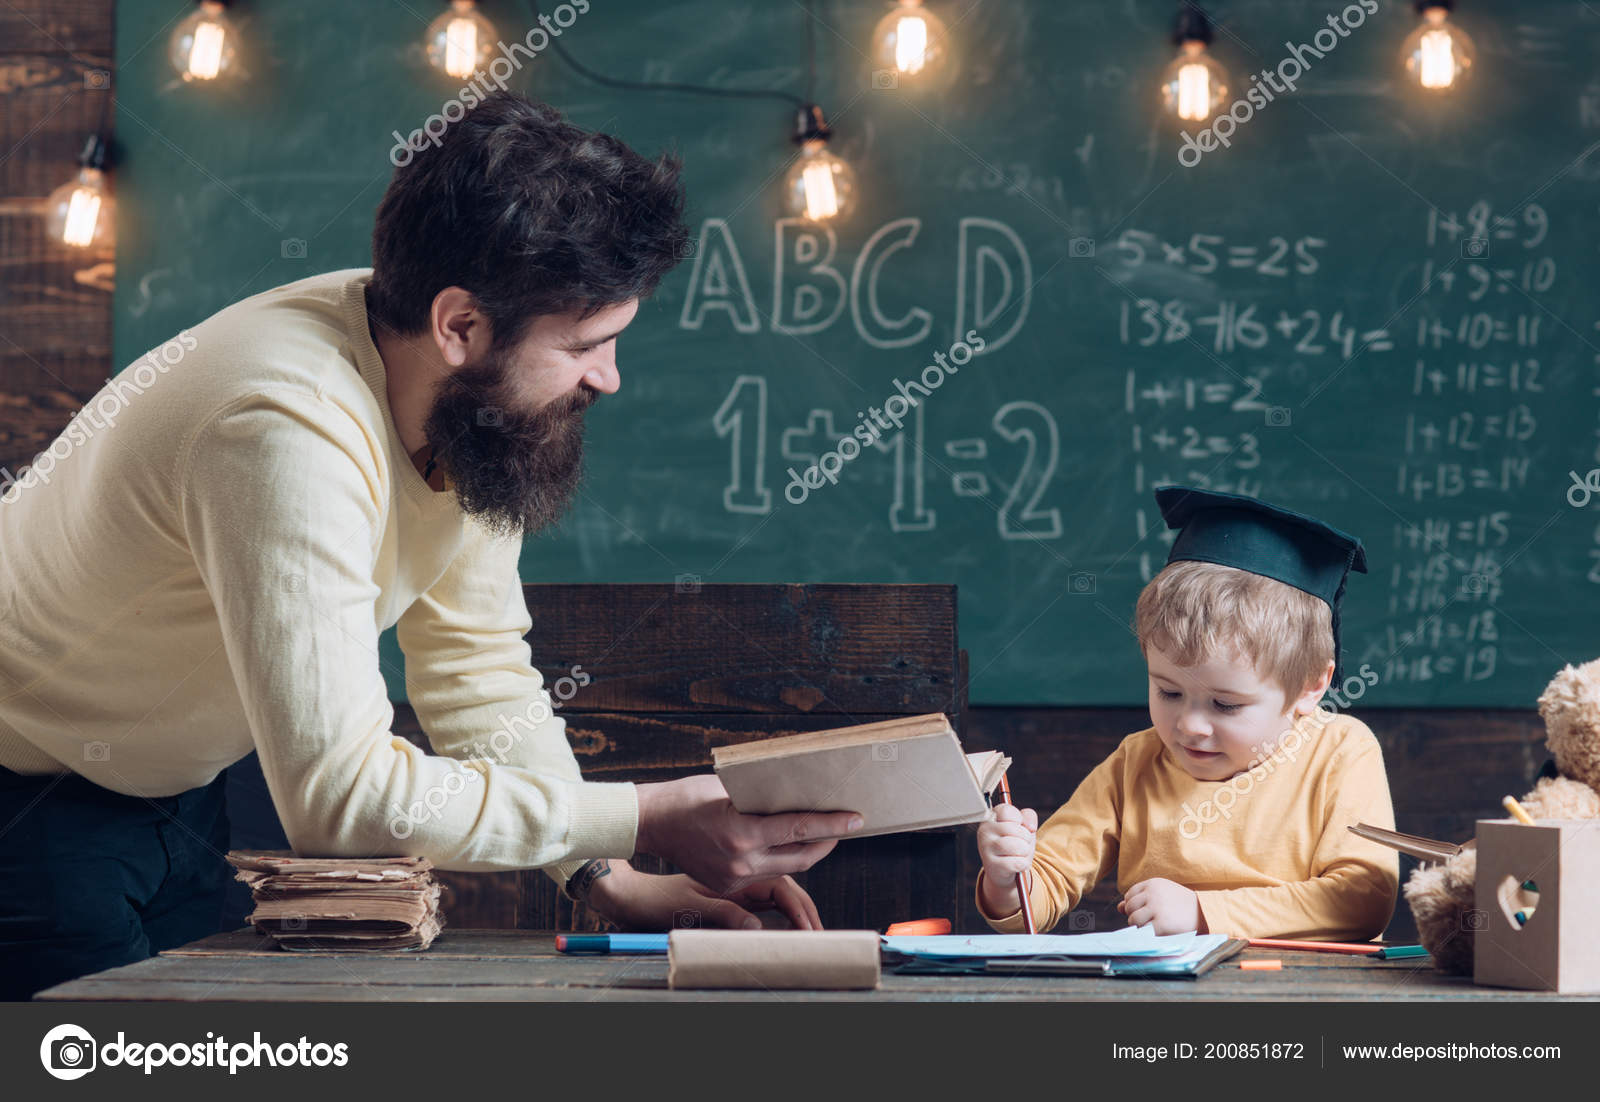 Wunderkind And Genius Concept Father Teacher Reading Book Teaching Kid Son Chalkboard On Background Boy Child In Graduate